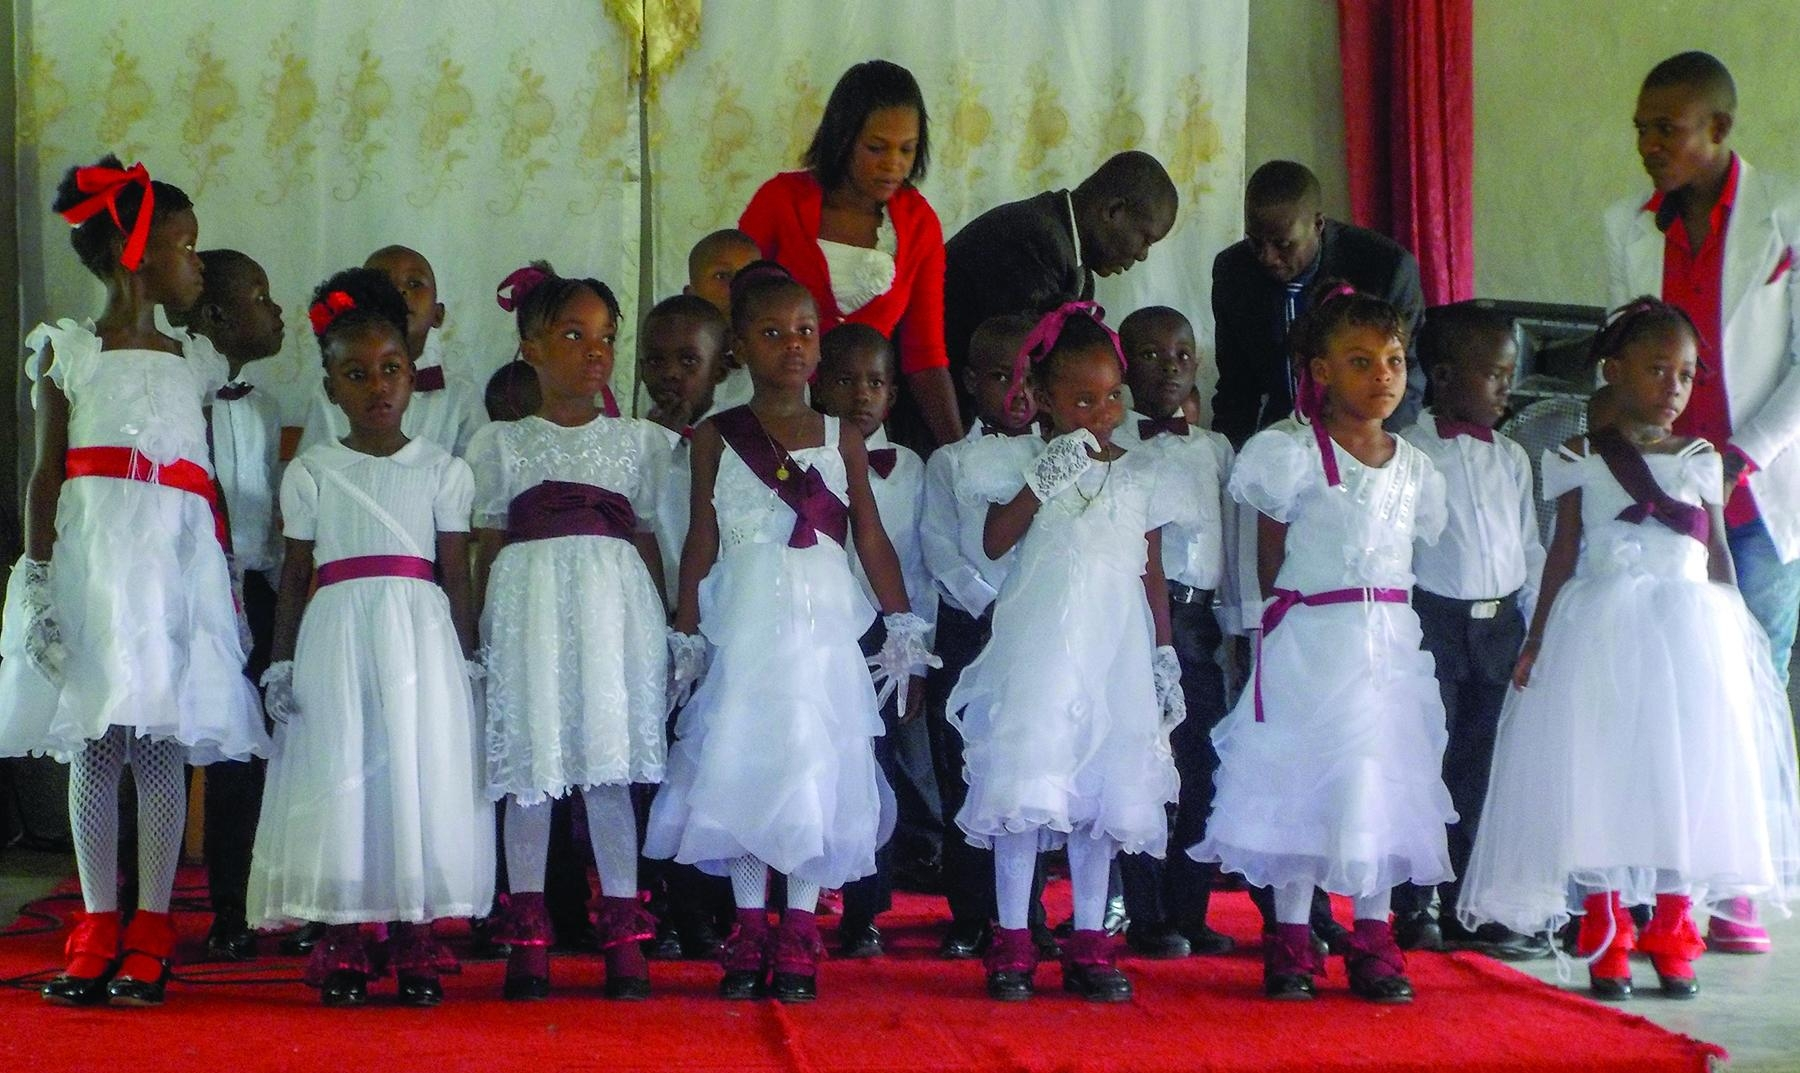 Kindergarten graduations are a special celebration as these children are loved by God and on the rise to be Christian leaders.